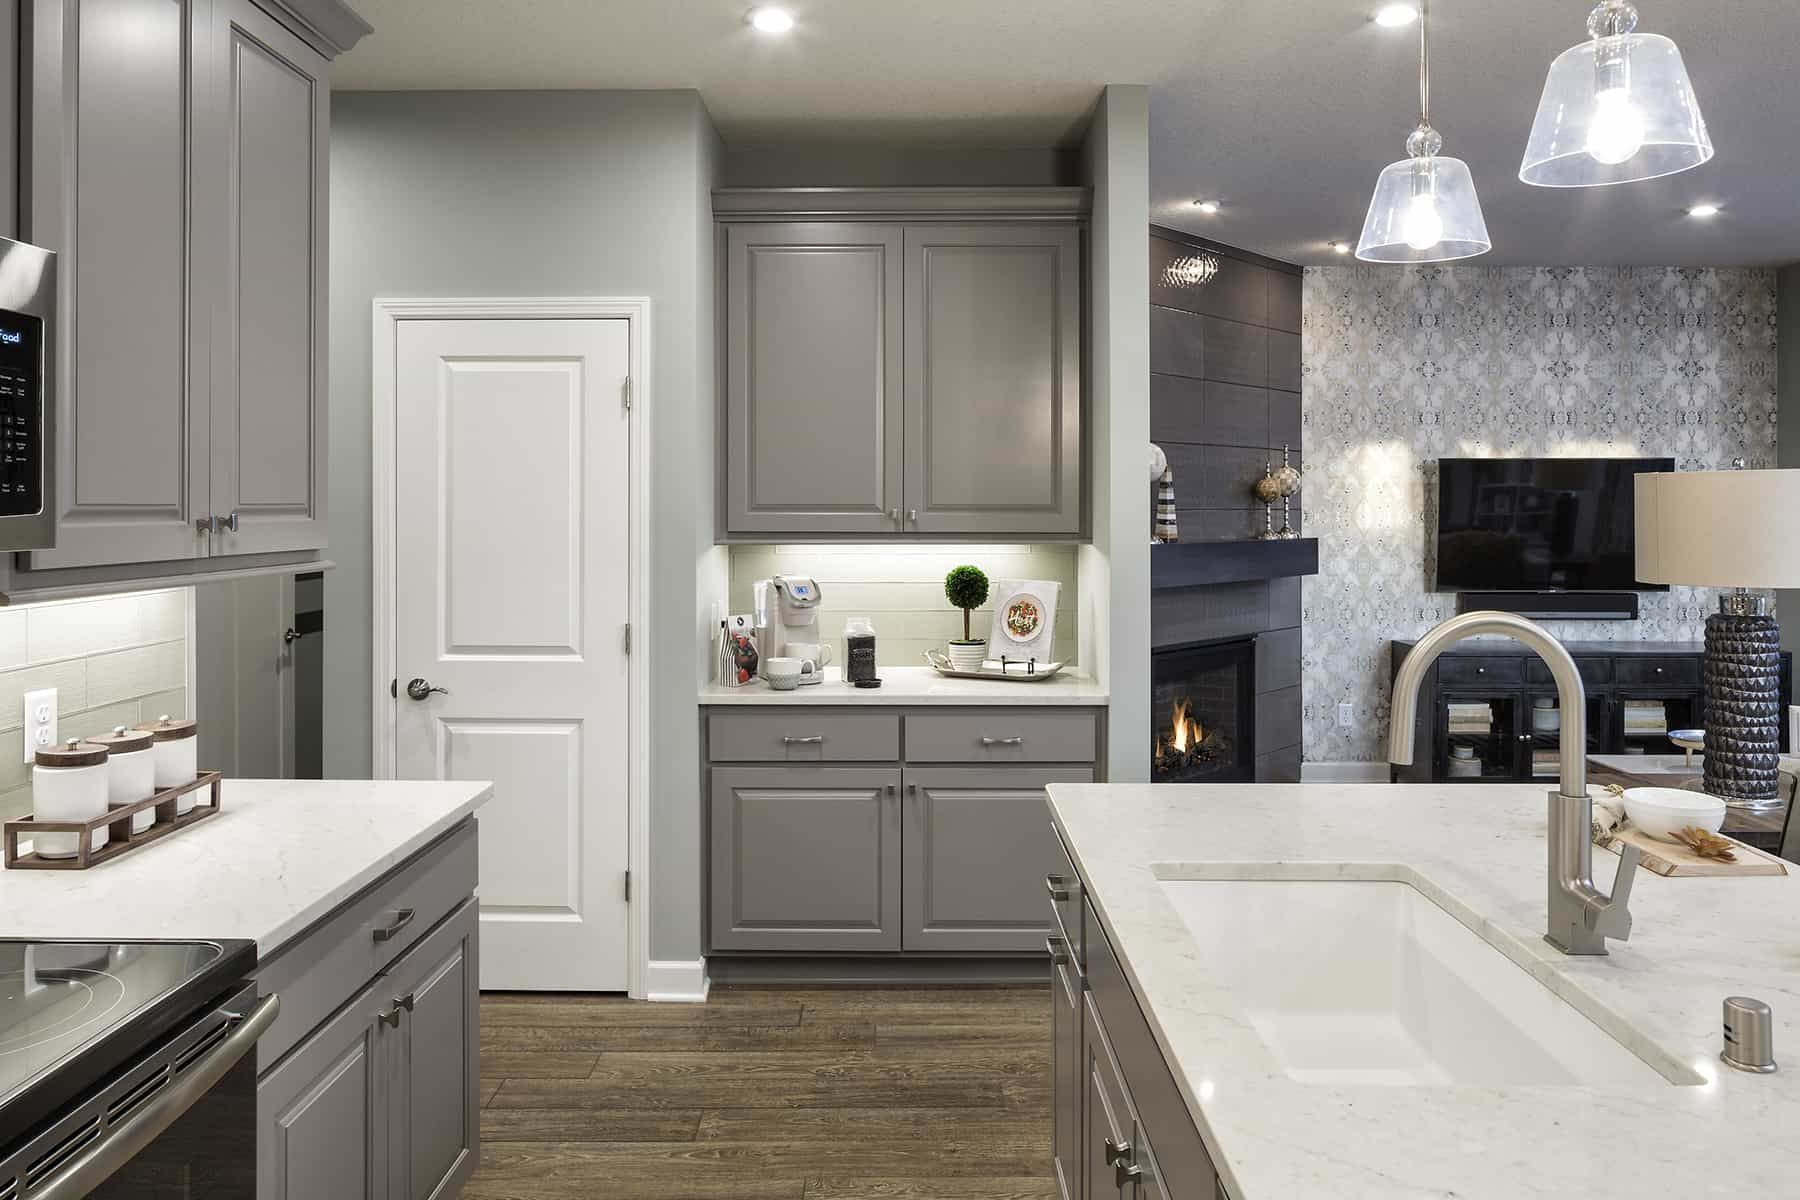 Kitchen featured in the Linden II By M/I Homes in Minneapolis-St. Paul, MN